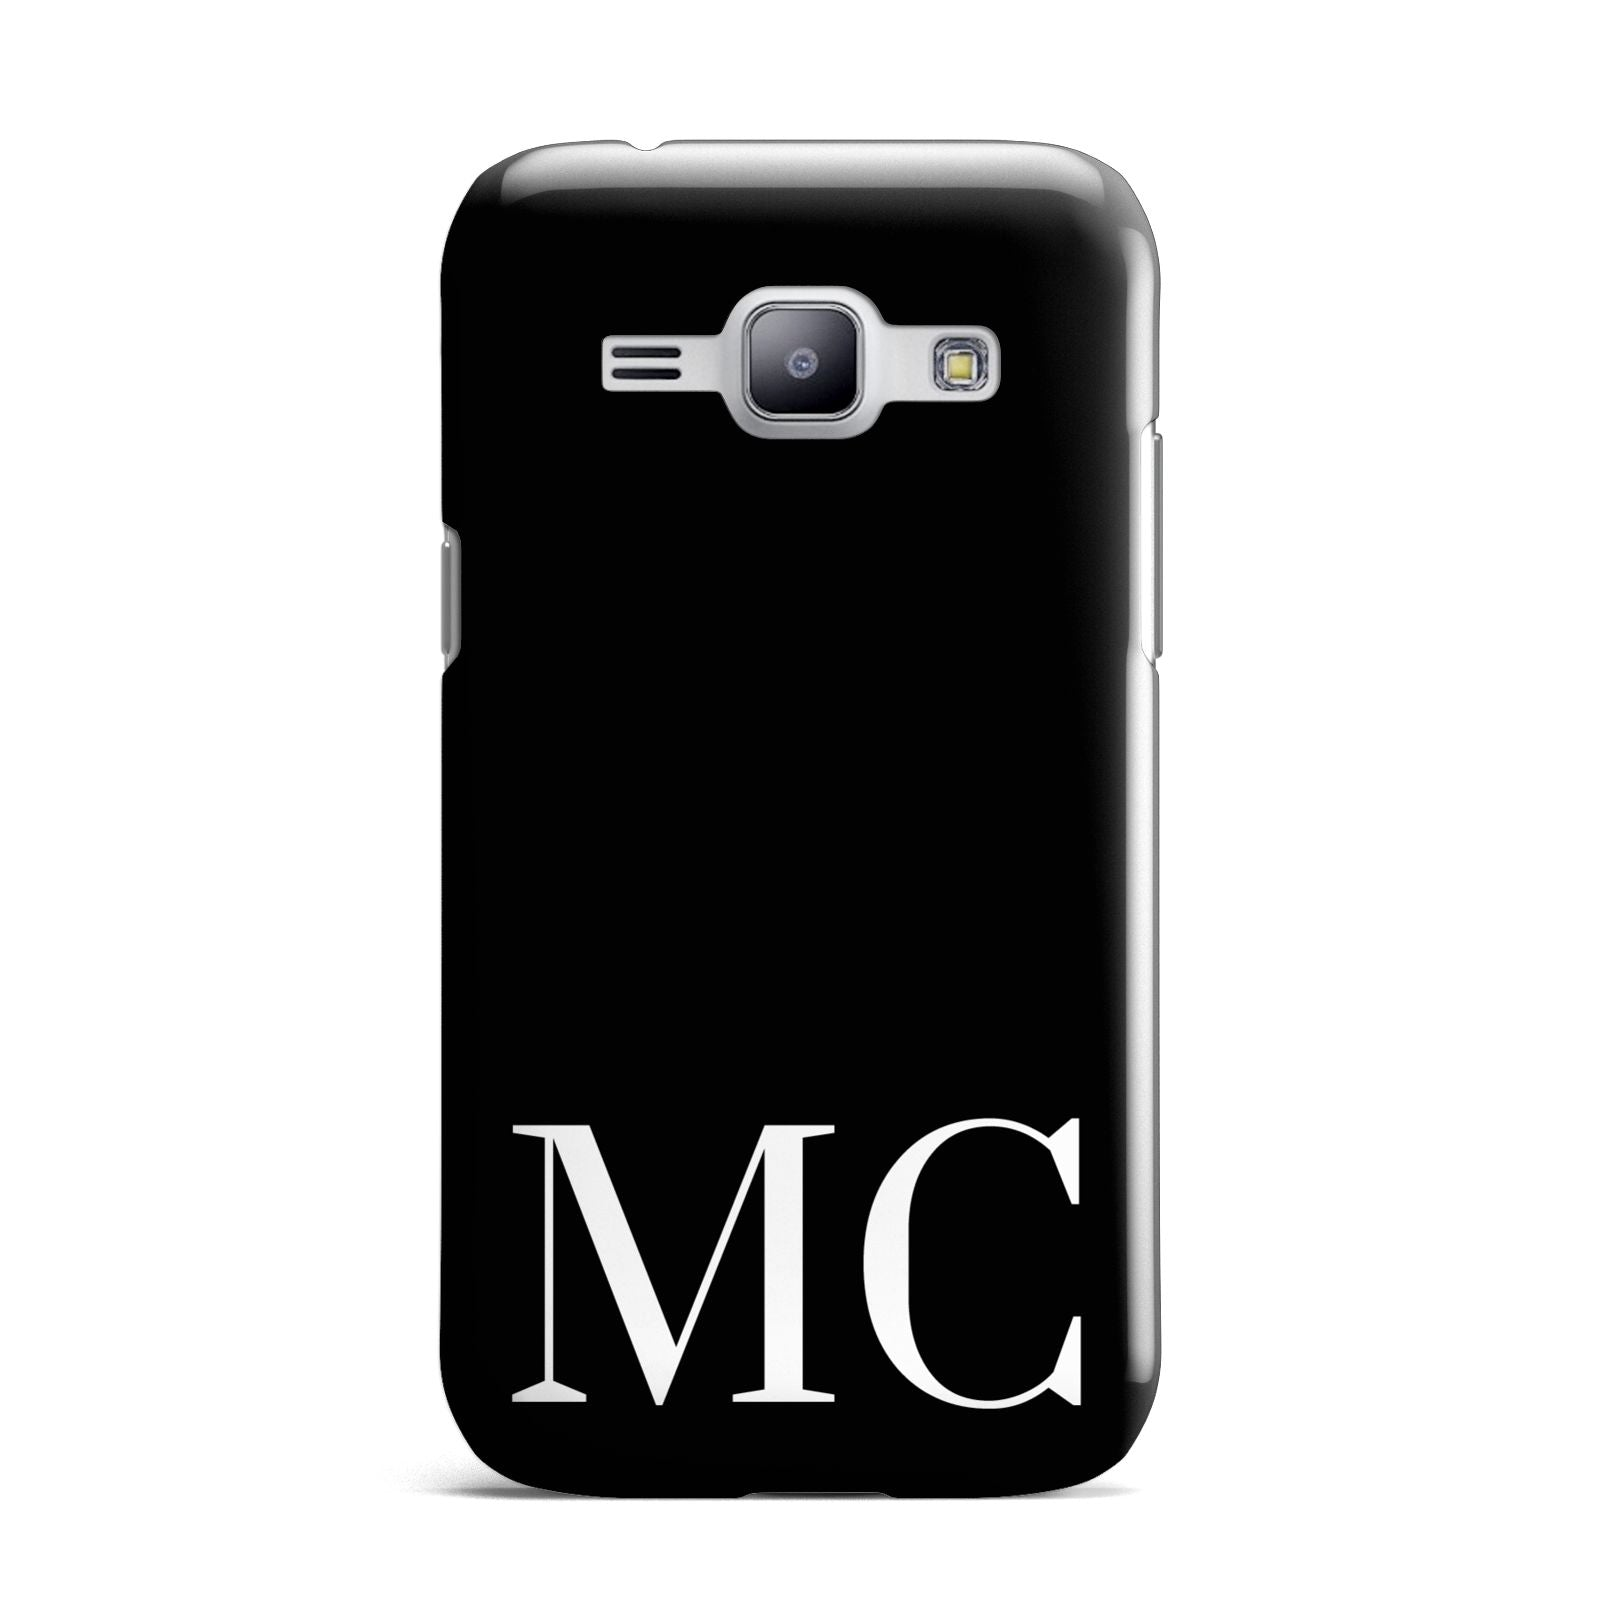 Initials Personalised 1 Samsung Galaxy J1 2015 Case